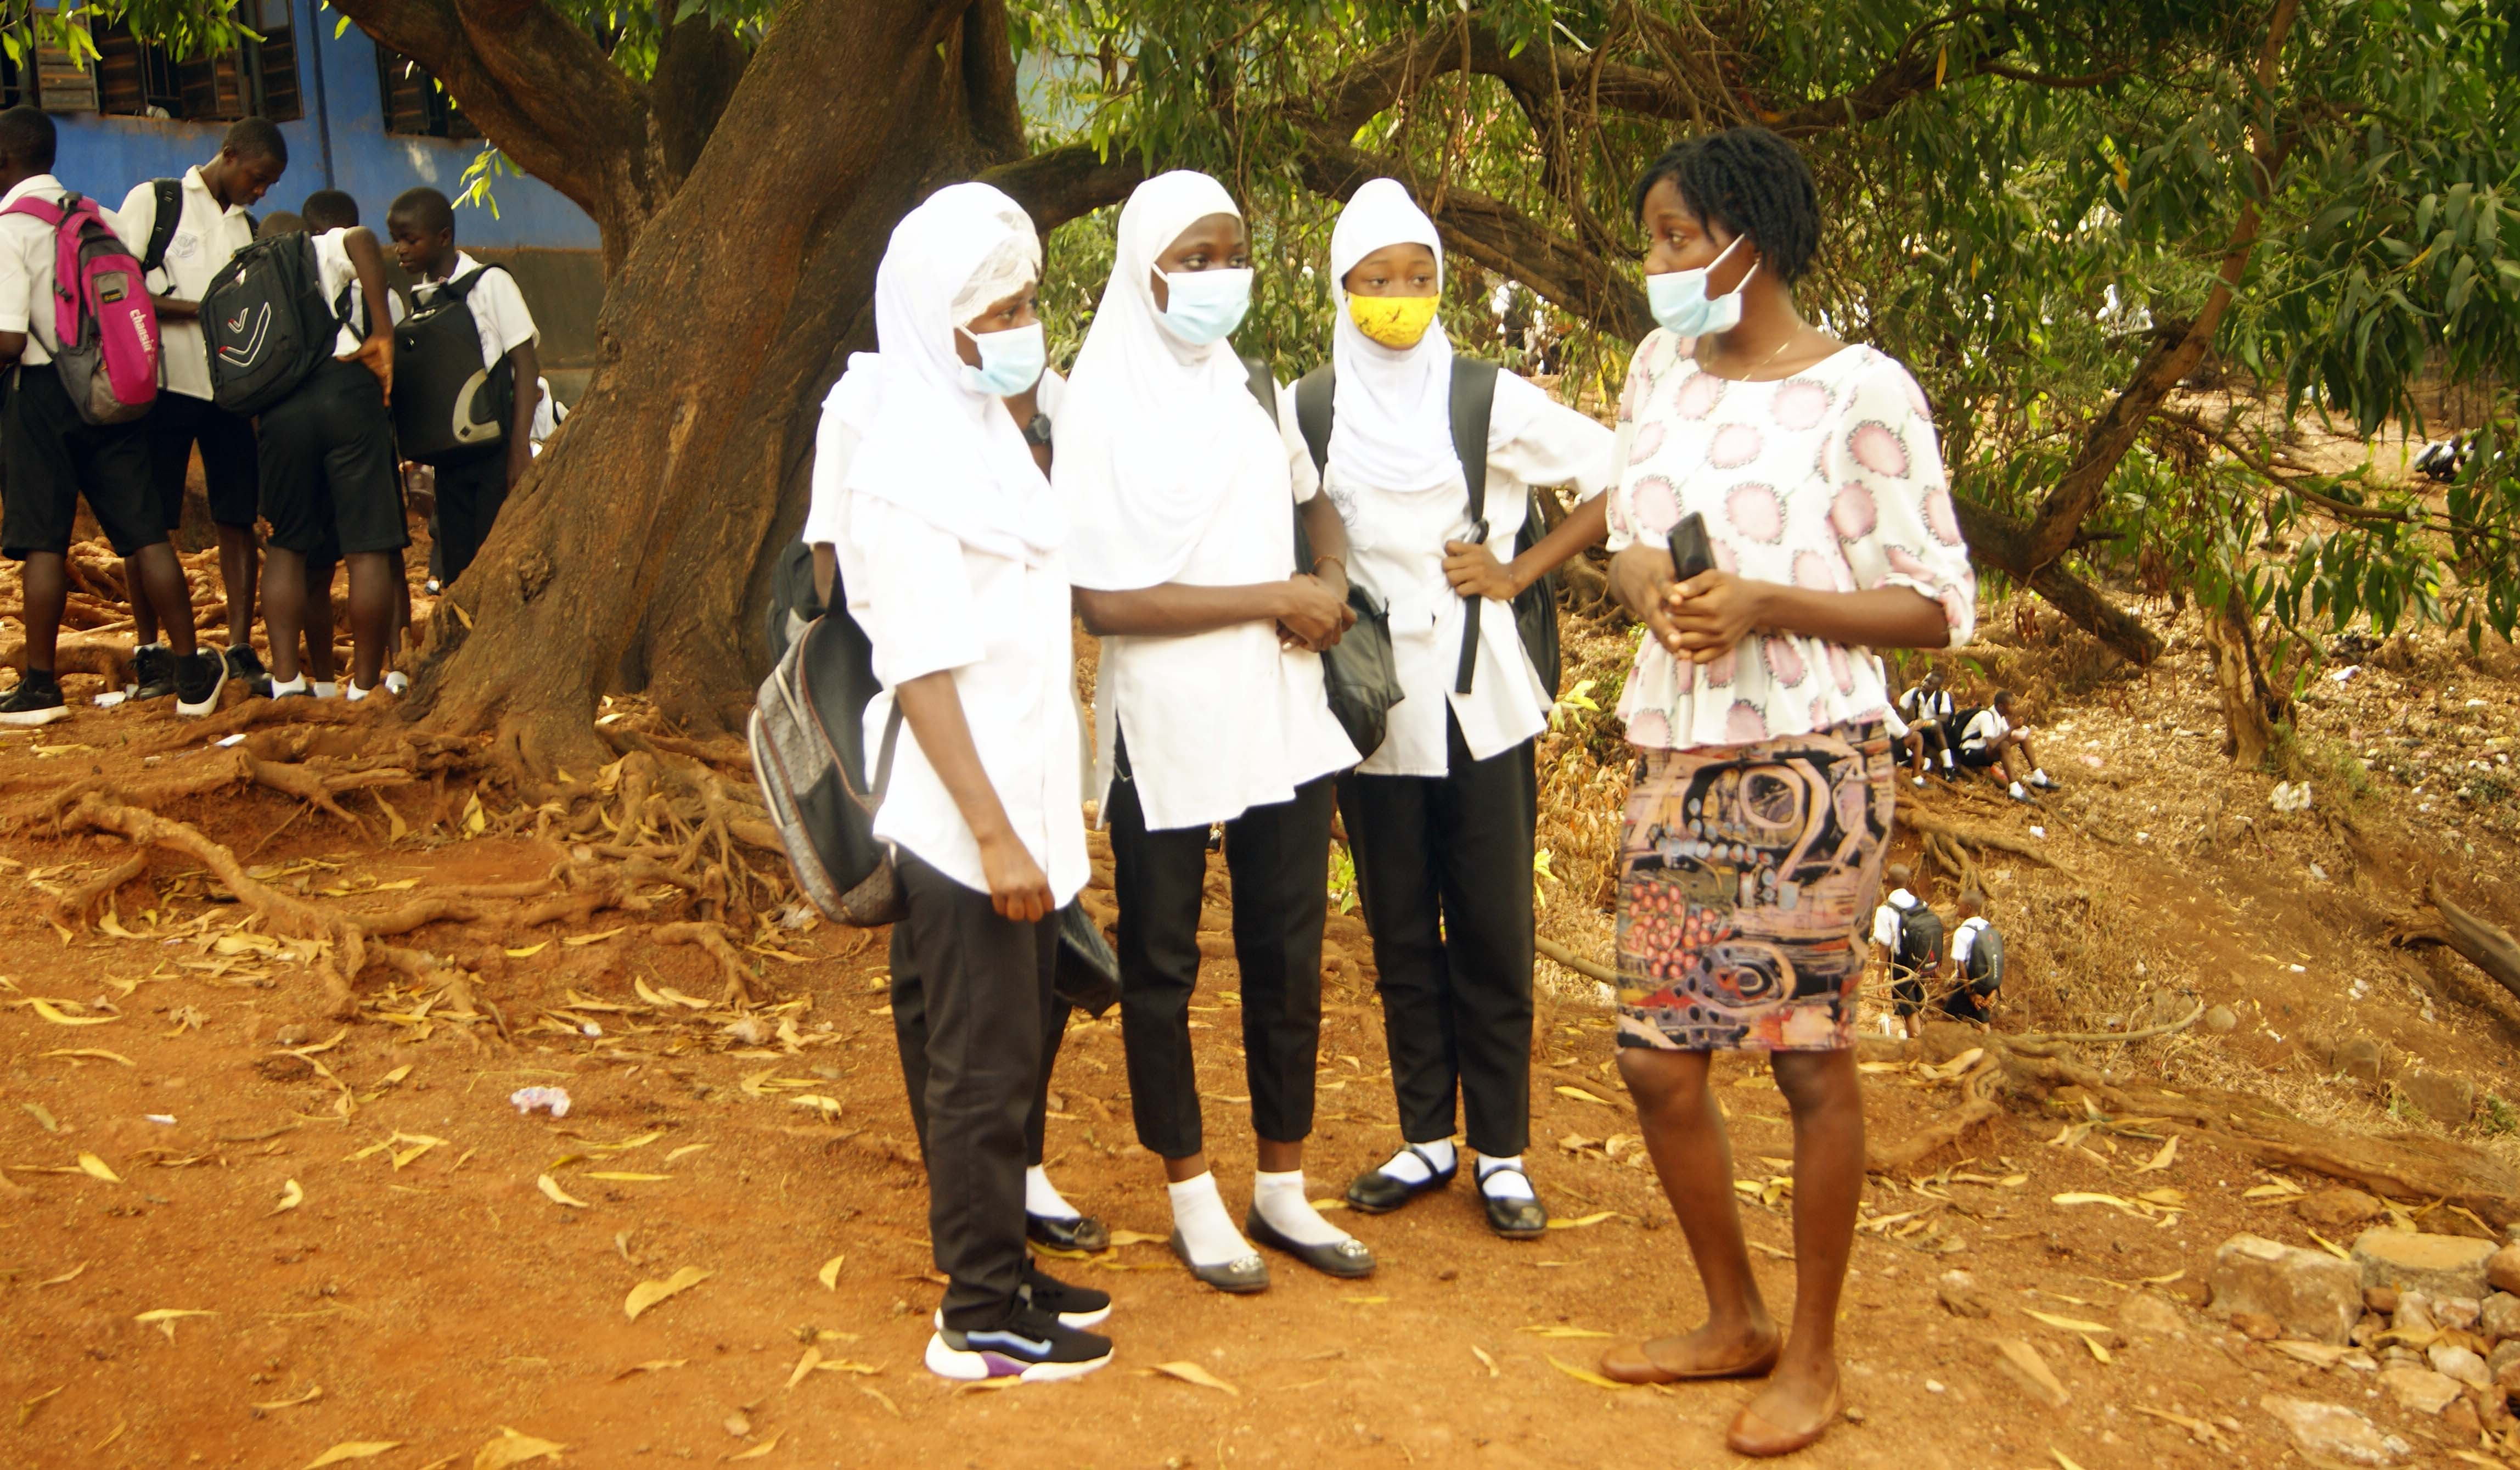 A woman wearing a face mask stands and speaks with three adolescent girls.